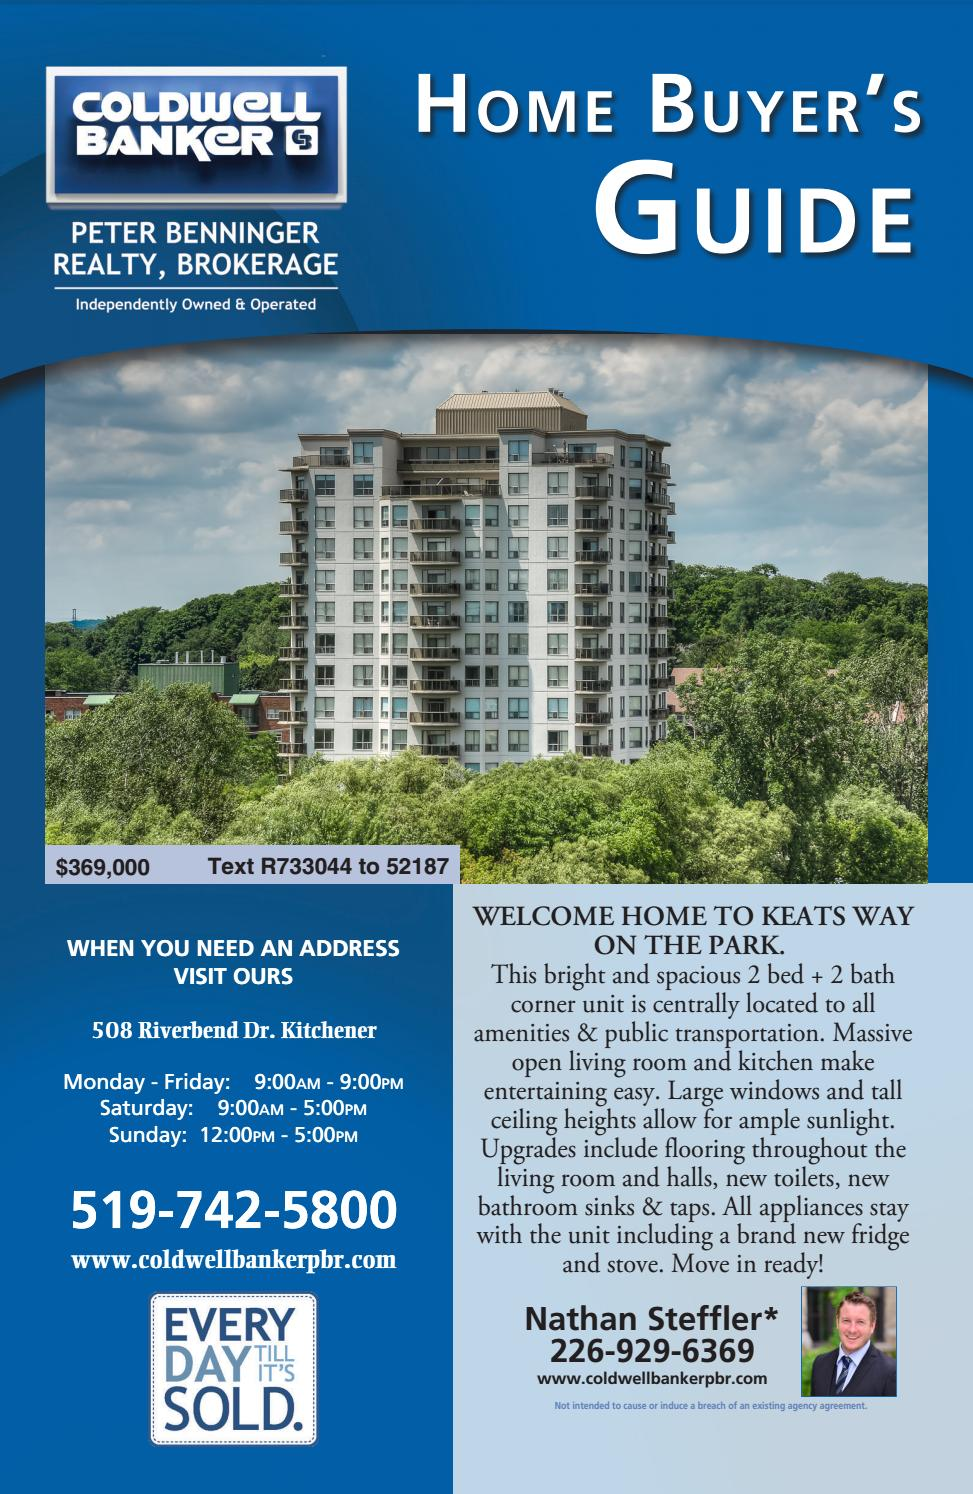 CBPBR HBG26.05 by The Real Estate Book of Kitchener Waterloo - issuu